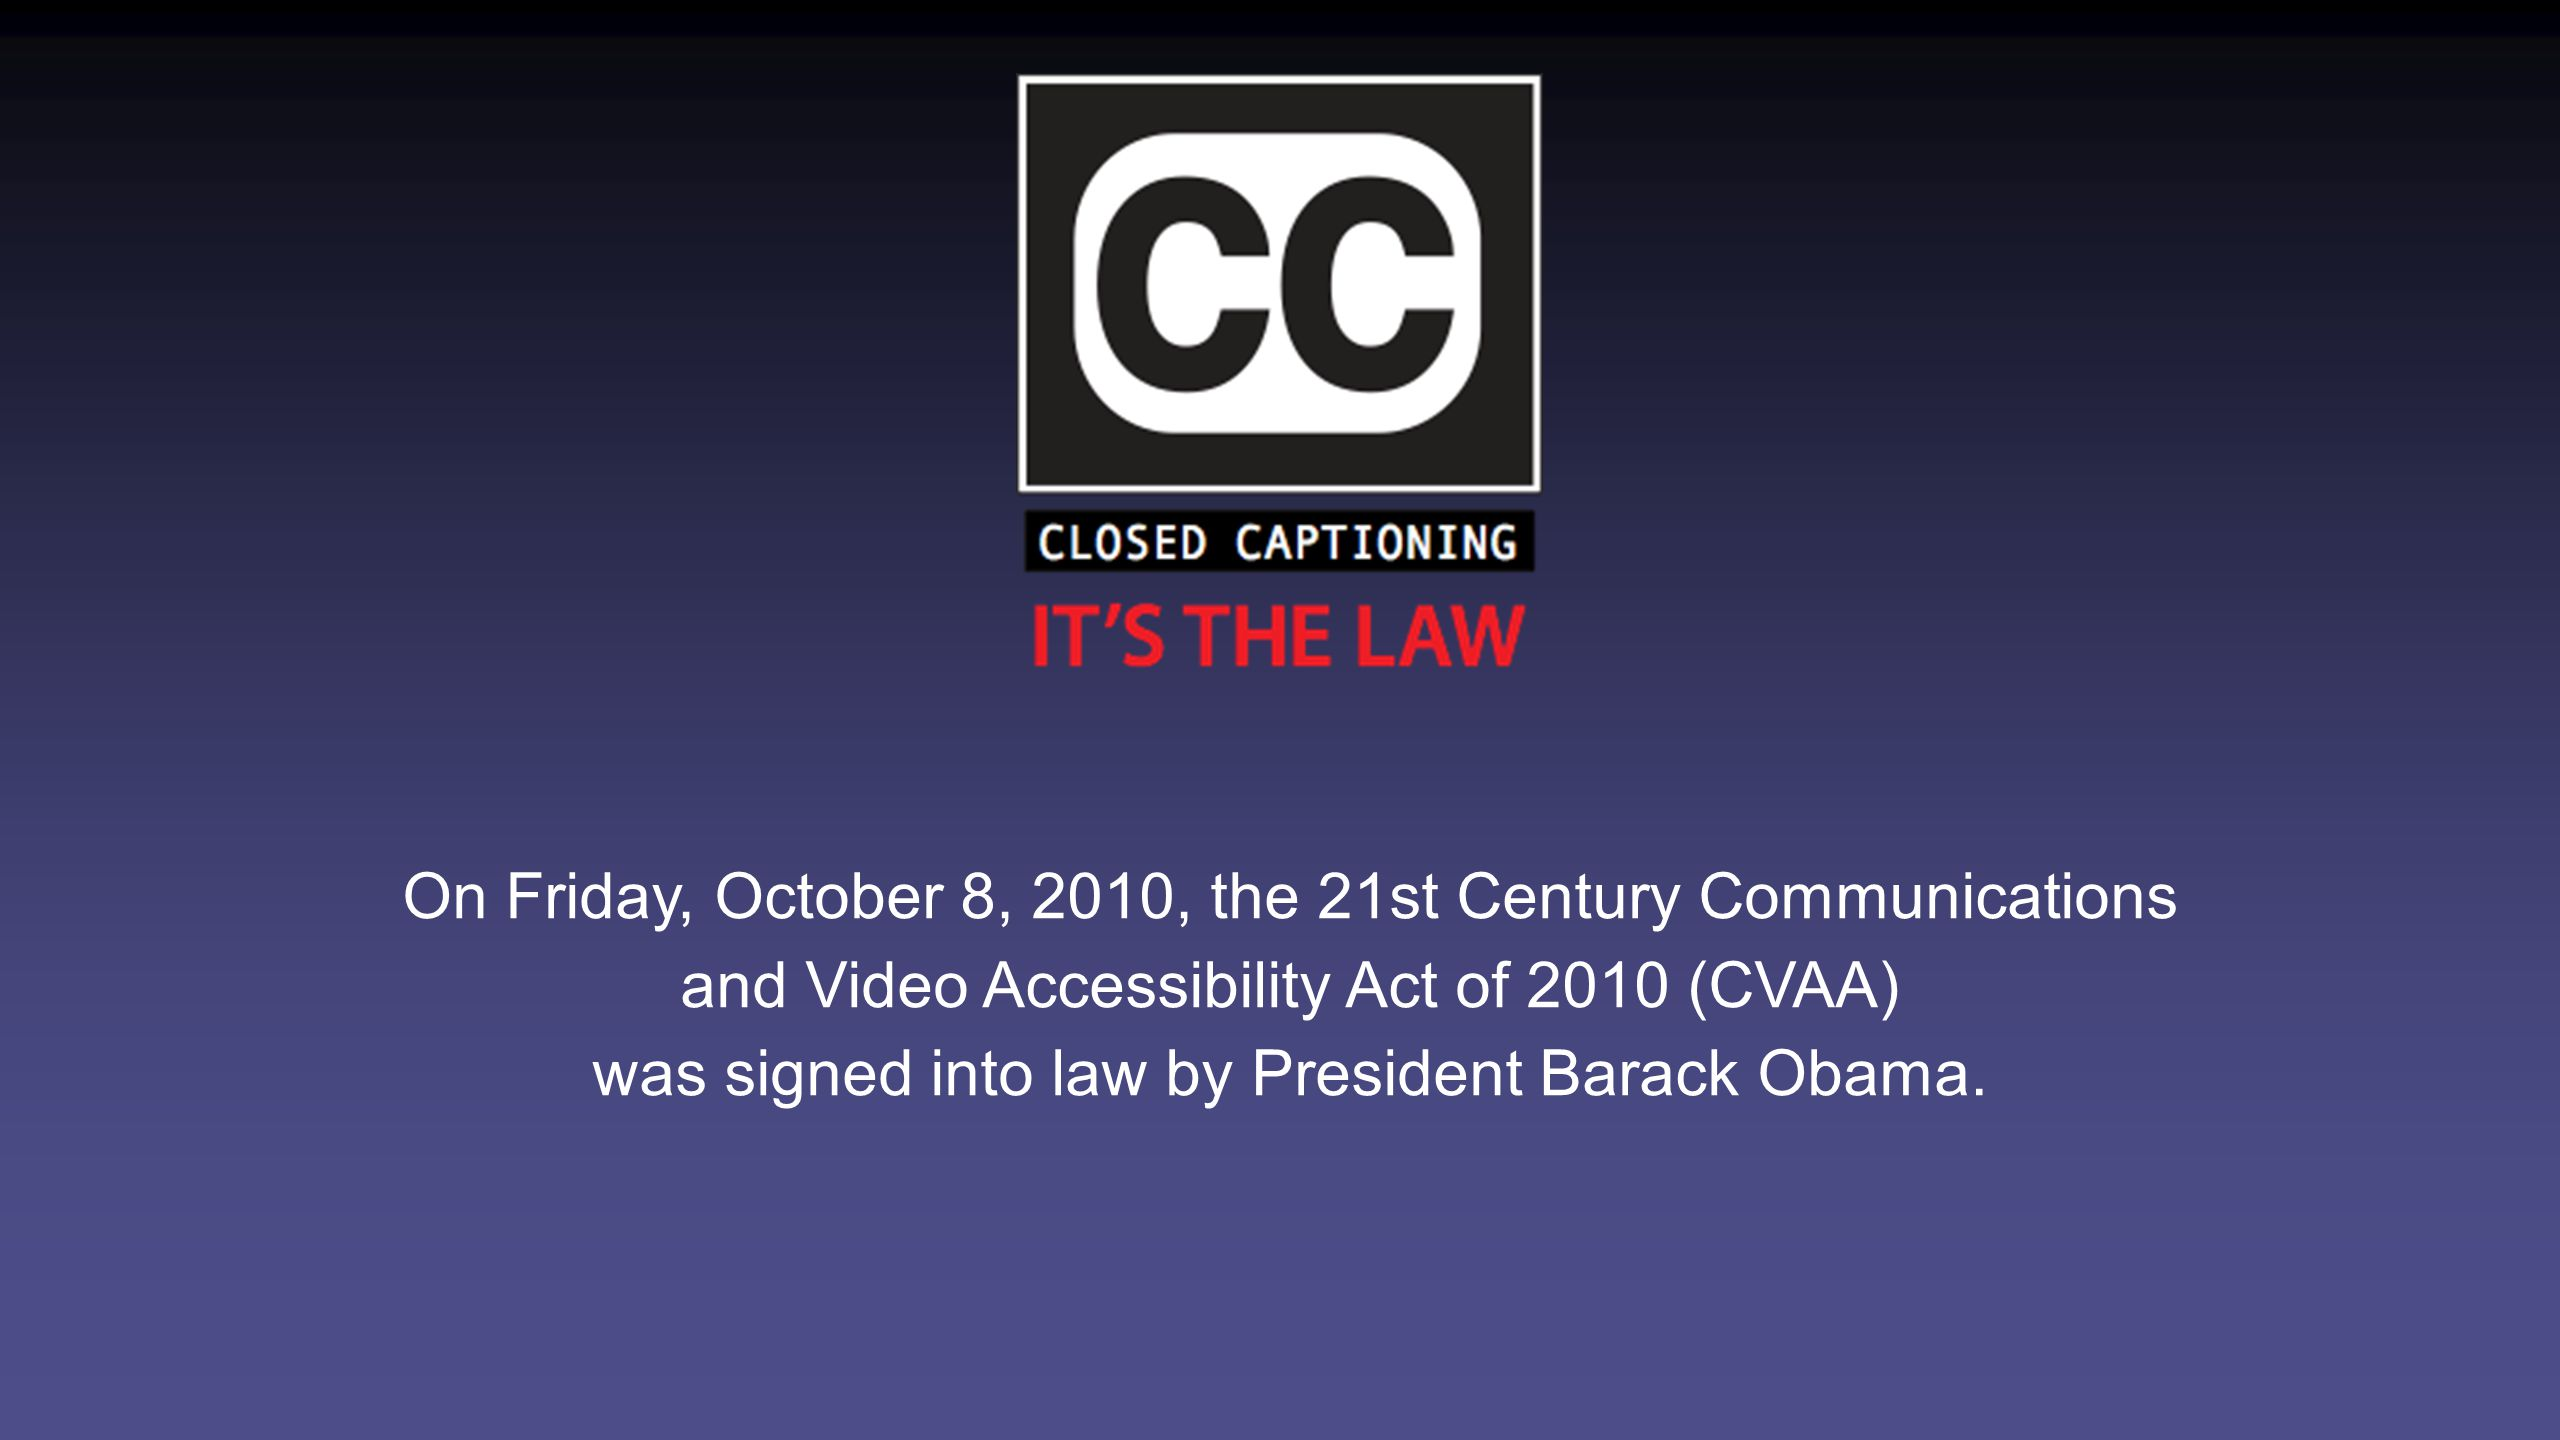 On Friday, October 8, 2010, the 21st Century Communications and Video Accessibility Act of 2010 (CVAA) was signed into law by President Barack Obama.